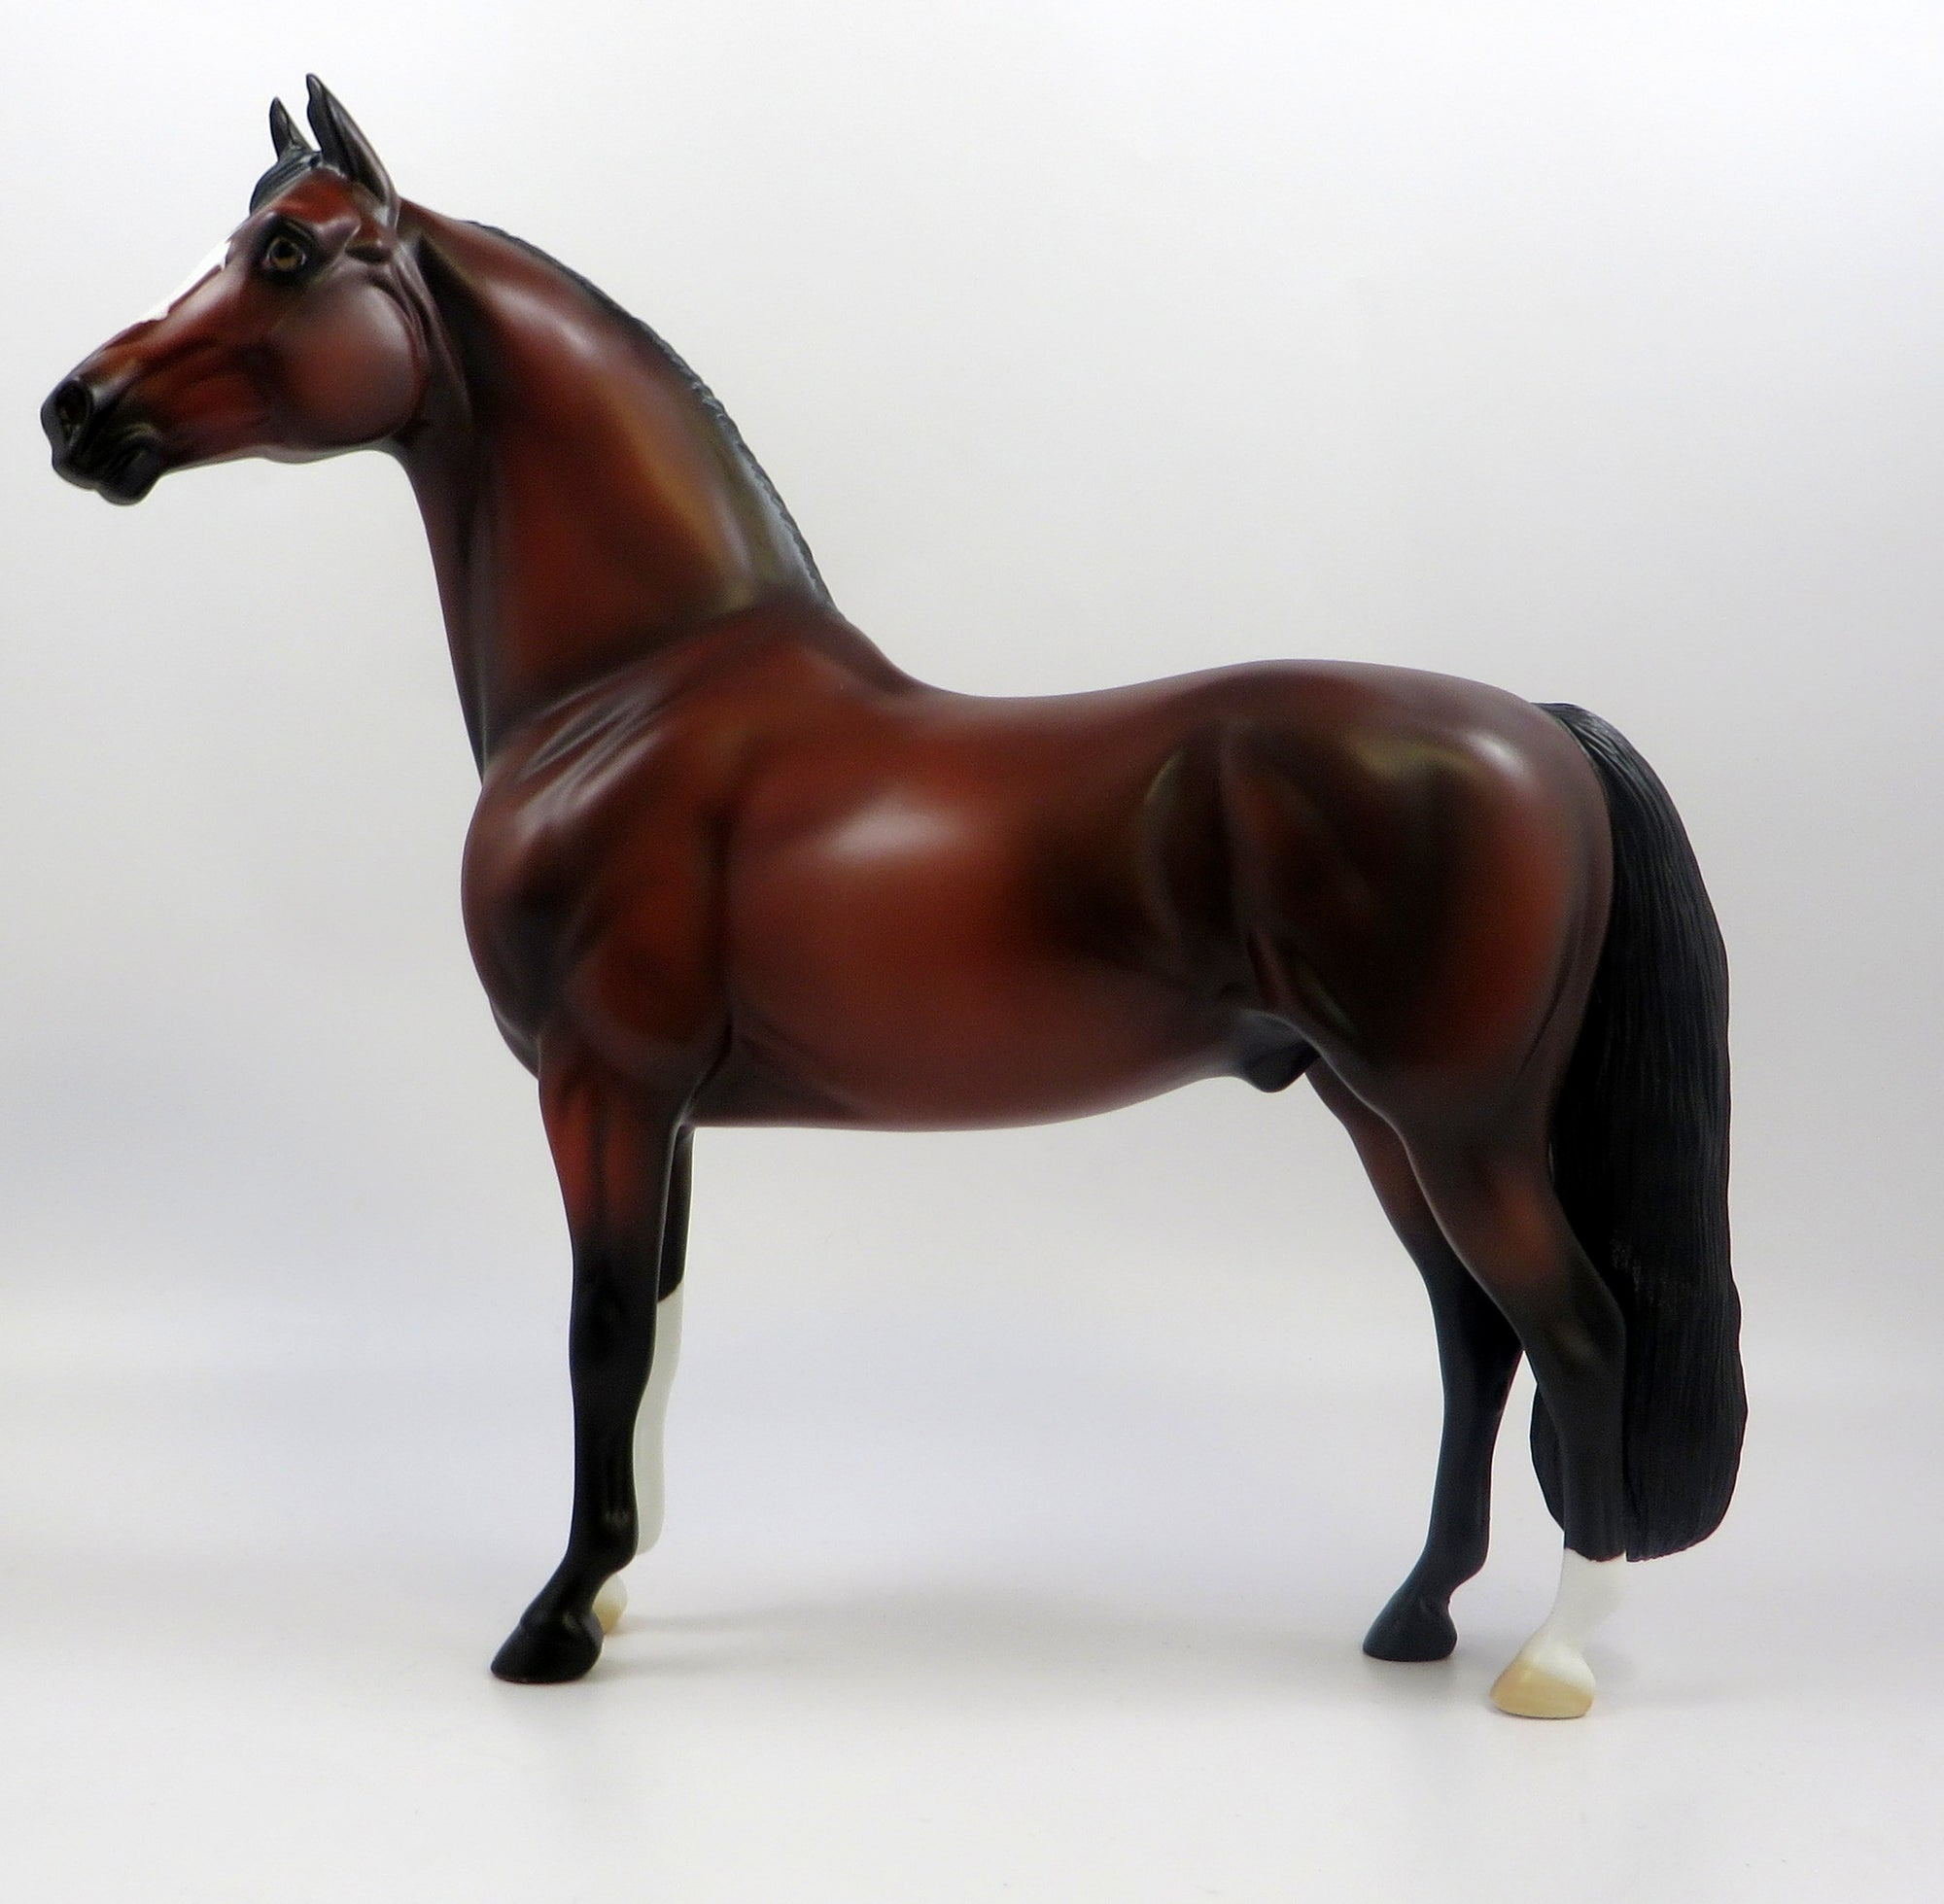 ALILI-OOAK BAY MORGAN MODEL HORSE EQ 19